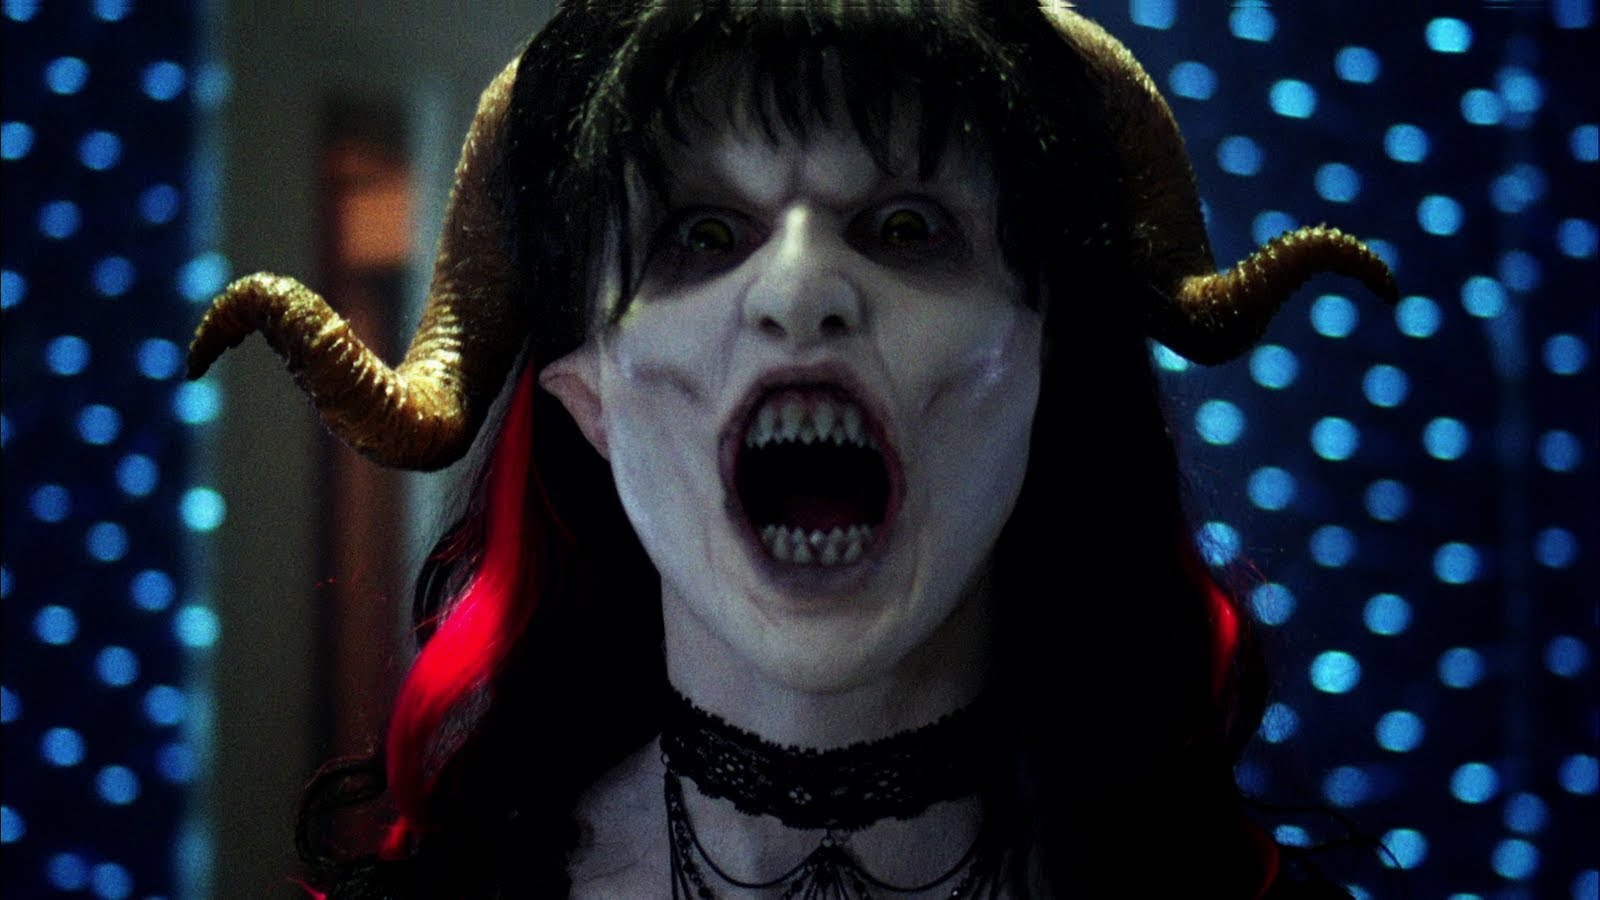 Amelia Kinkade Night Of The Demons film review – night of the demons (2009) | the kim newman